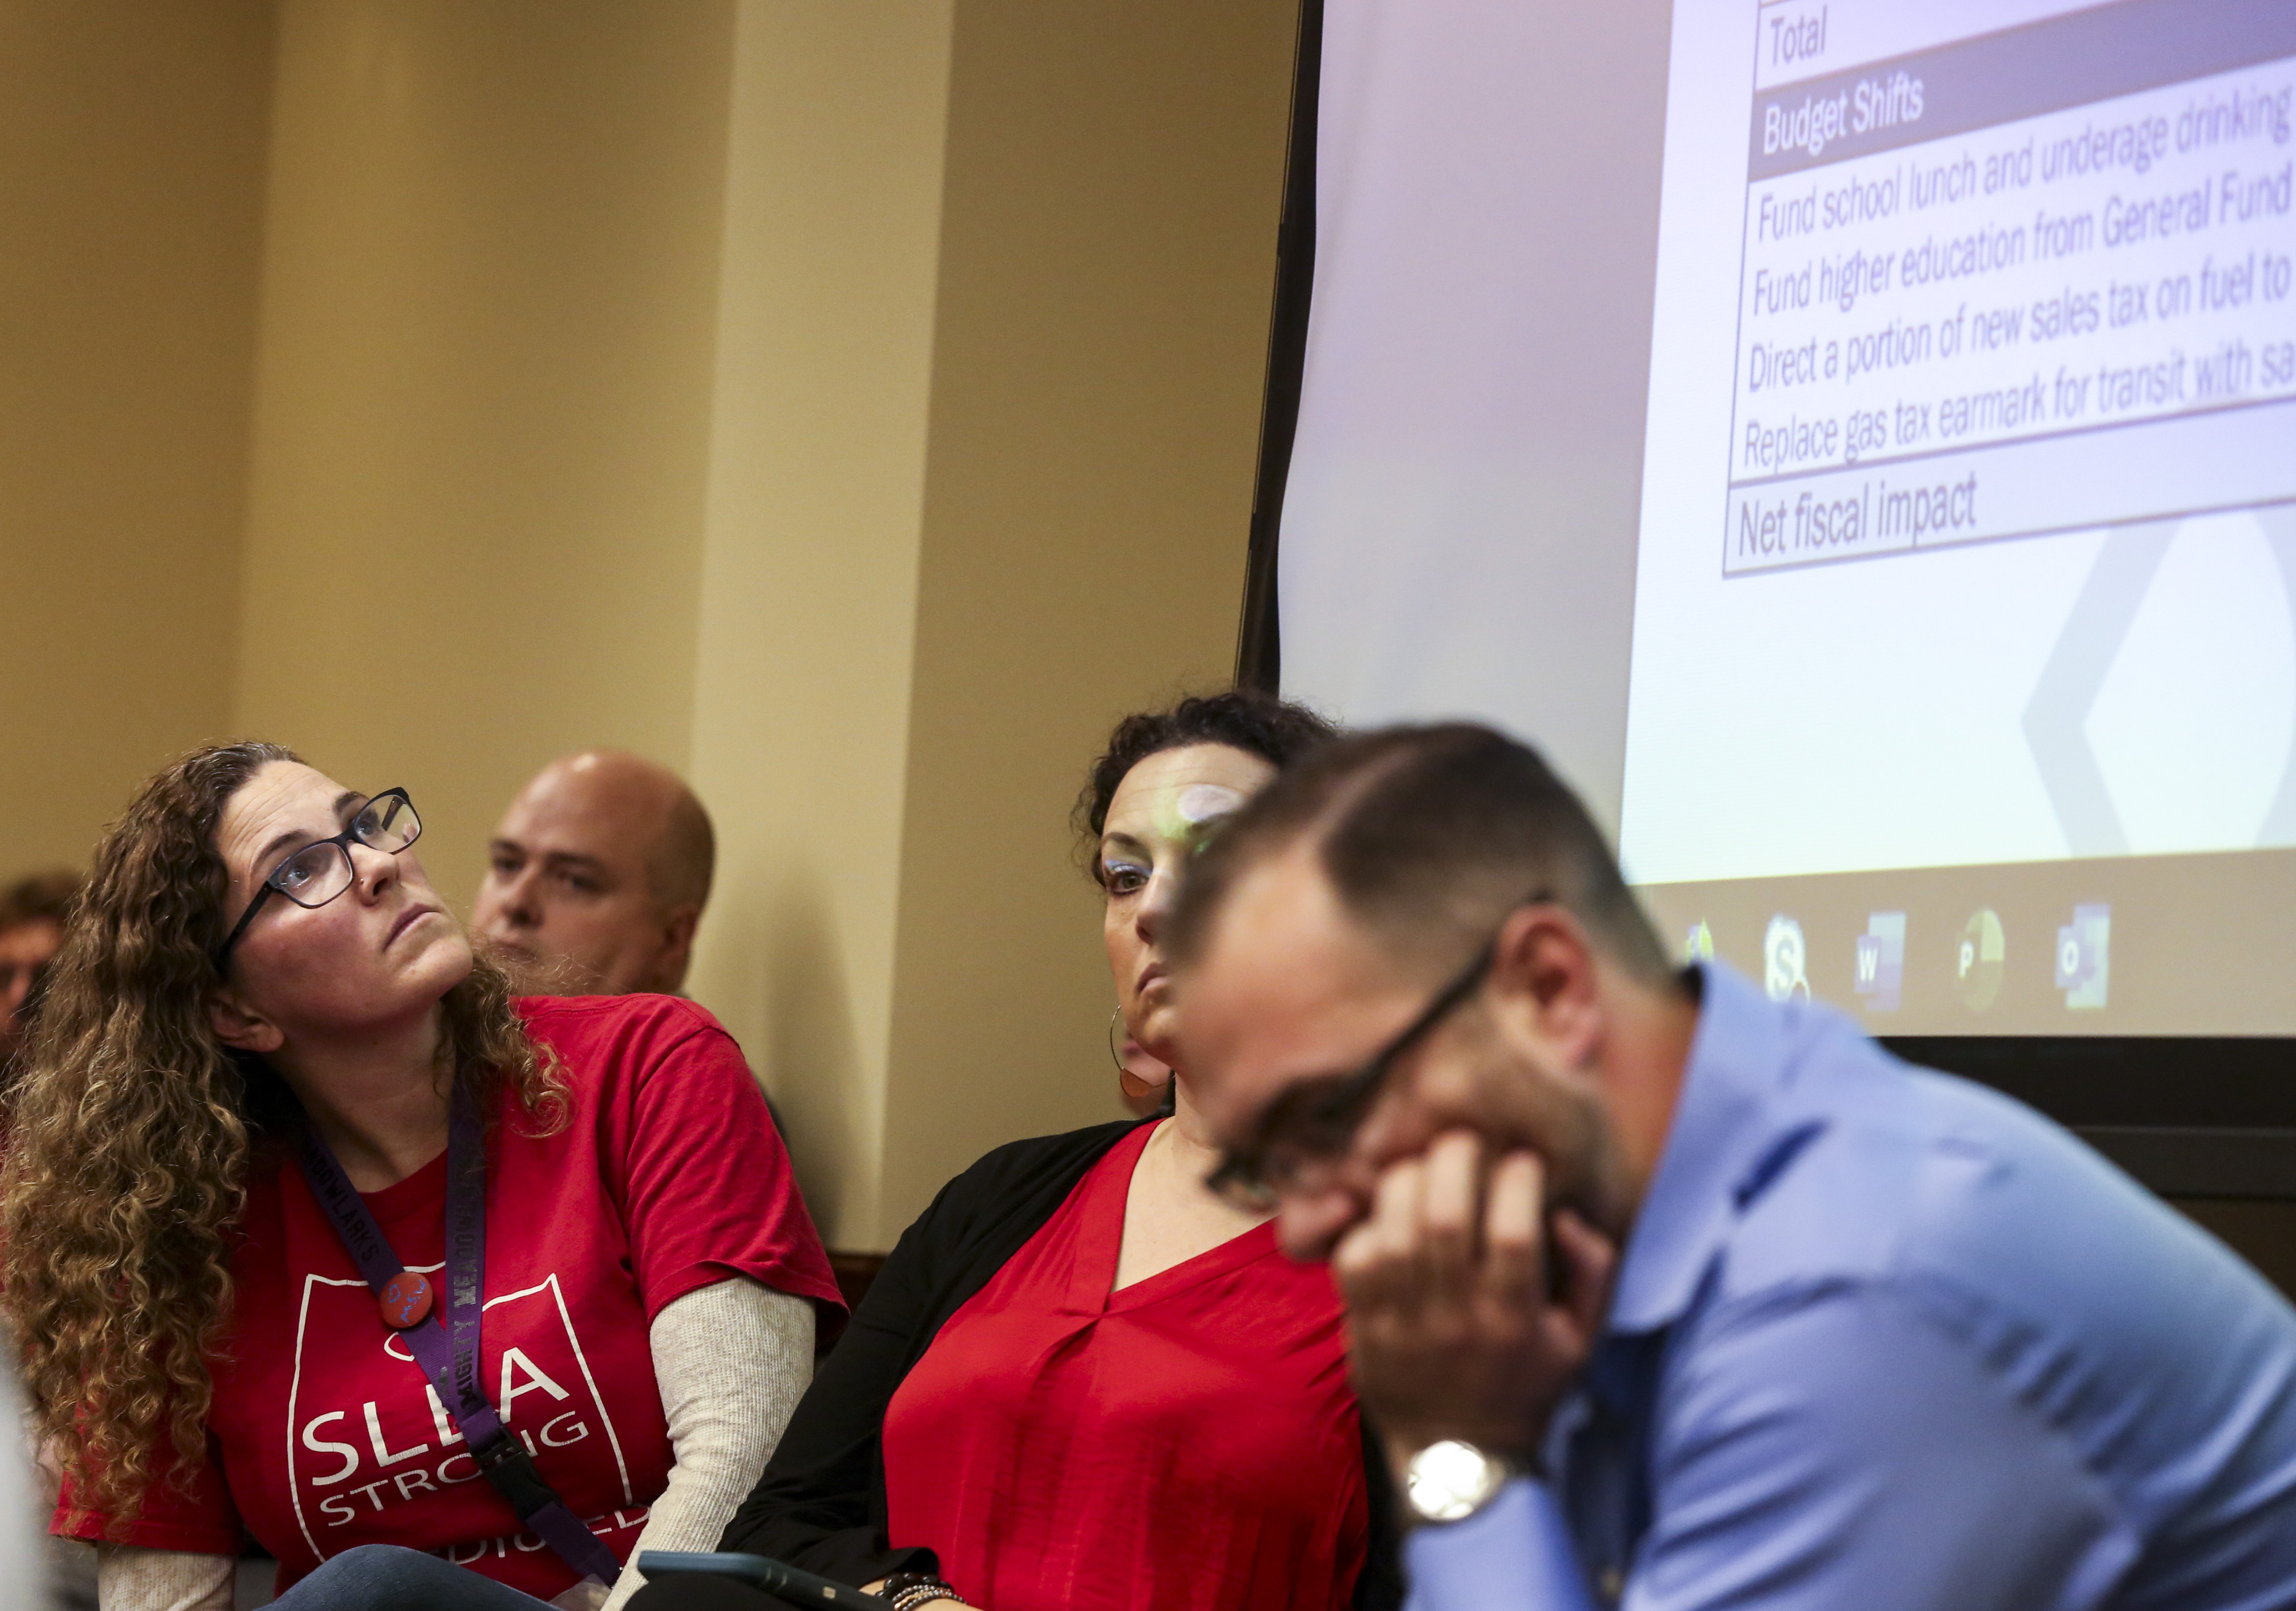 Jennifer Woznick, left, with the Salt Lake Education Association, looks at a projection screen of a state budget breakdown during a Tax Restructuring and Equalization Task Force meeting at the Capitol in Salt Lake City on Monday, Dec. 9, 2019.